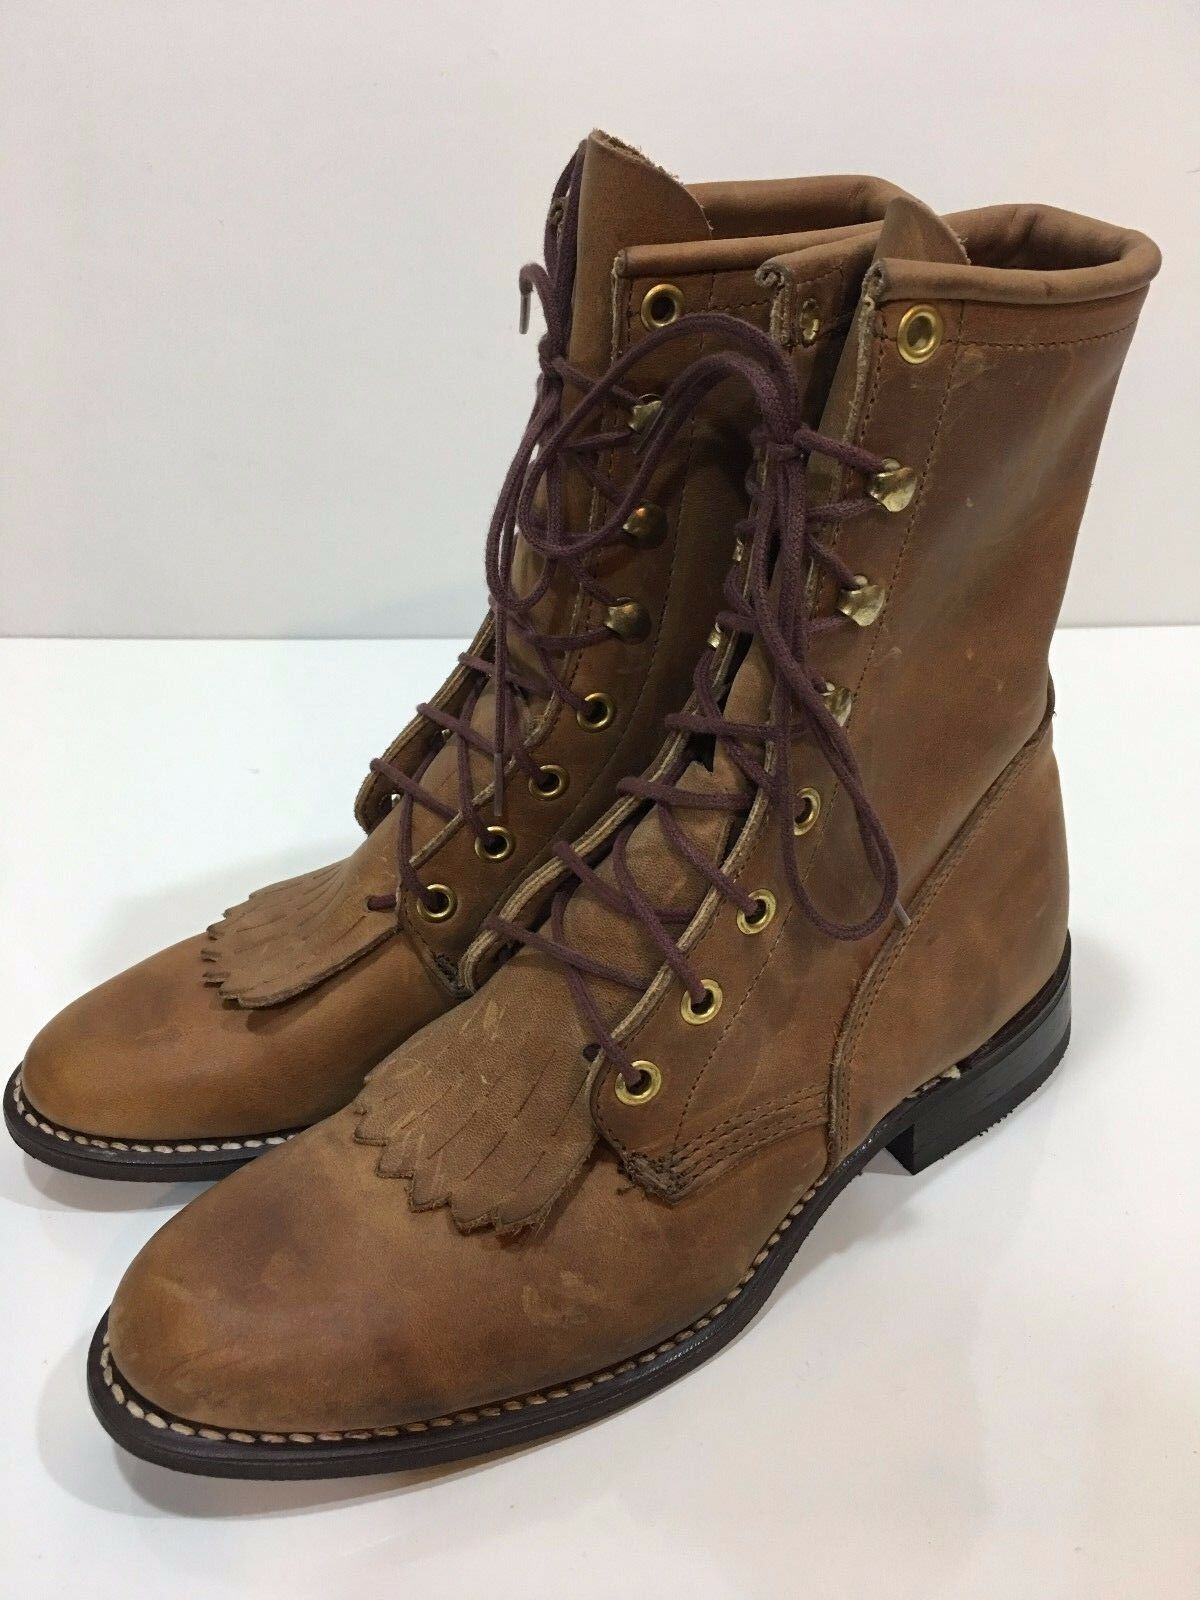 Western Cowboy Women's Leather Boots Shoes Size 6.5 M